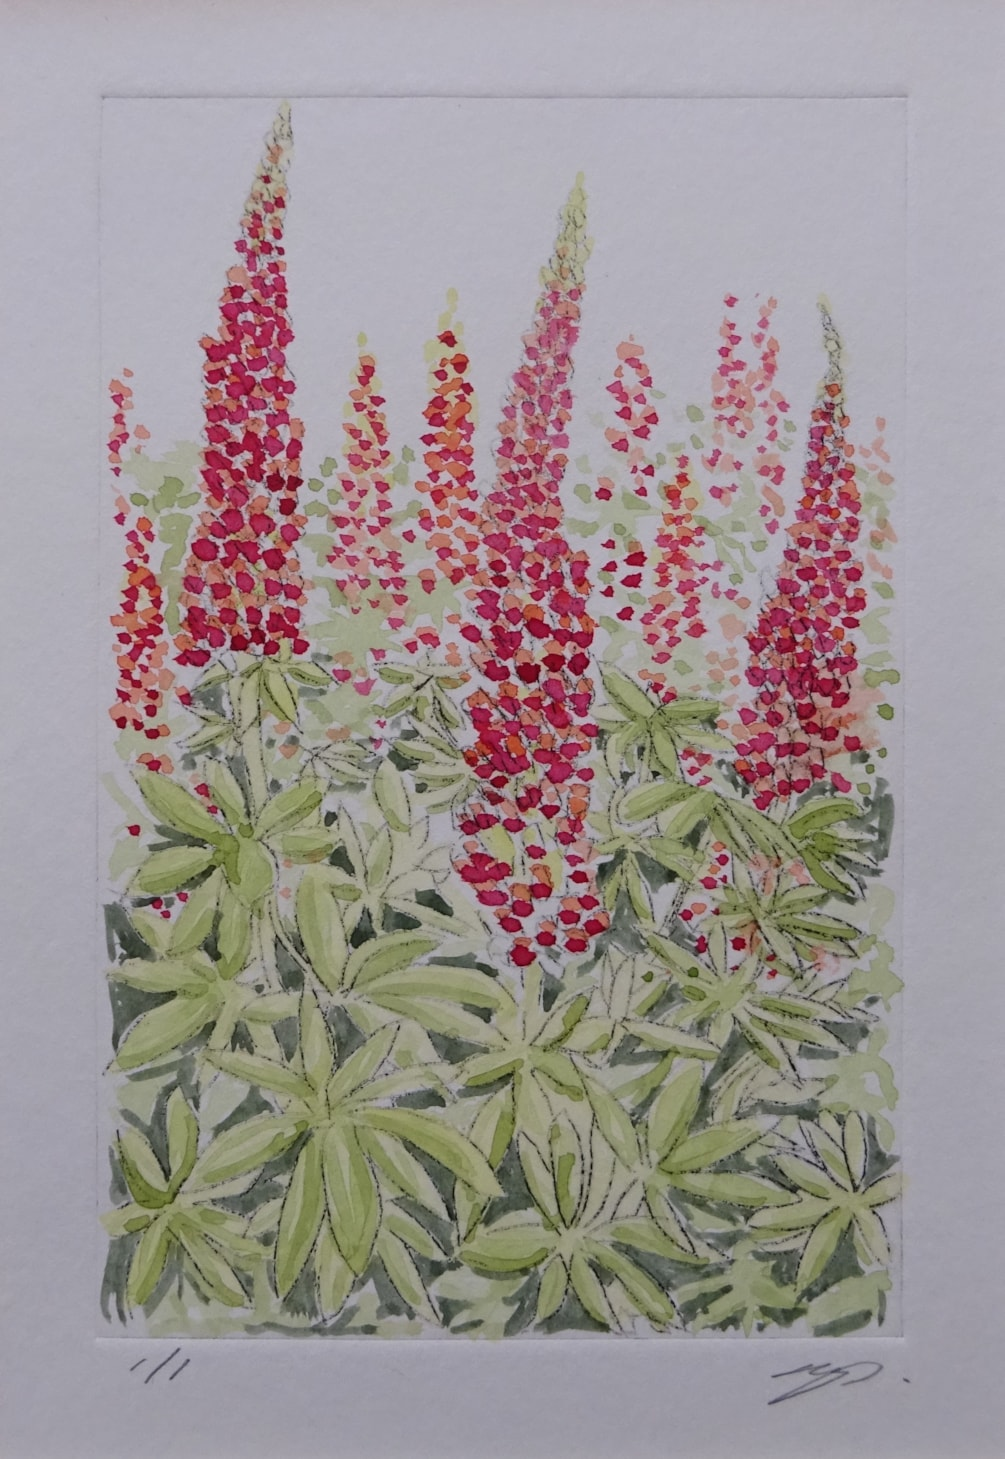 Cottage garden lupins - peach and red